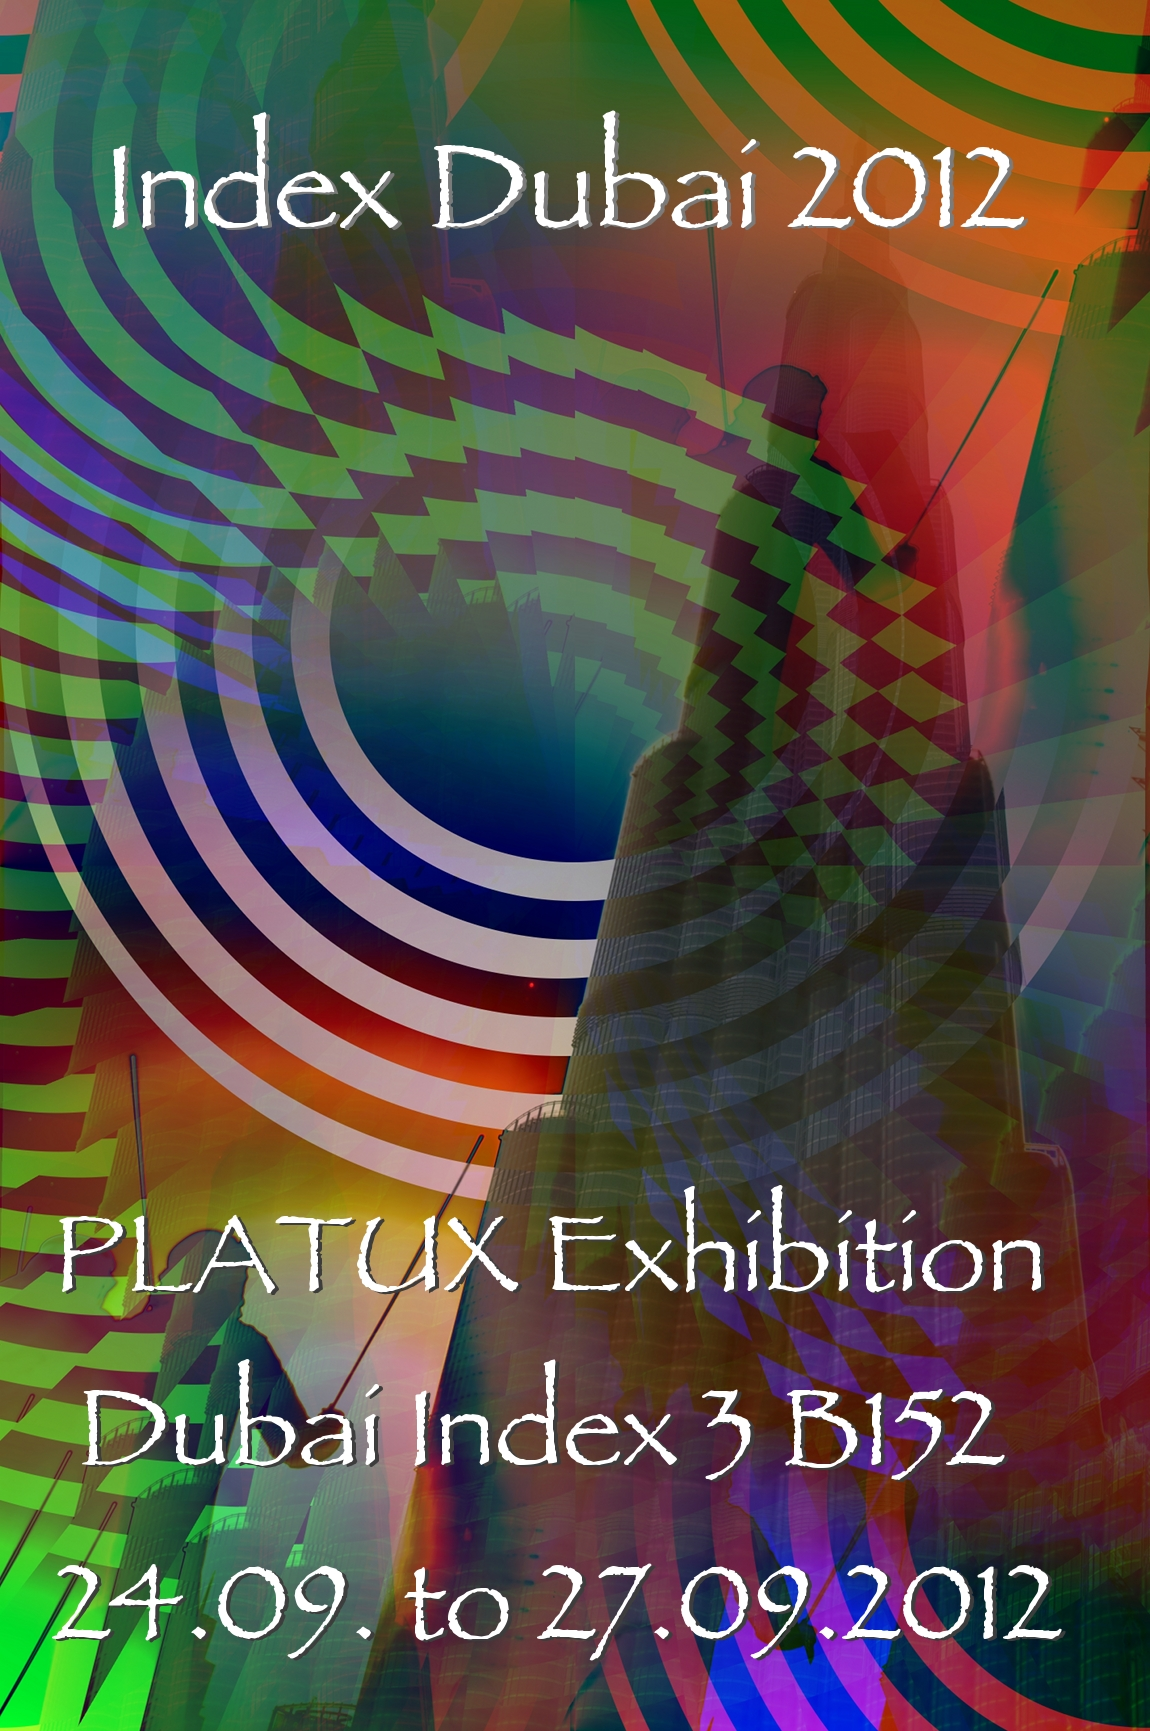 PLATUX Exhibition Index Dubai 3B152 24 to 27 September 2012